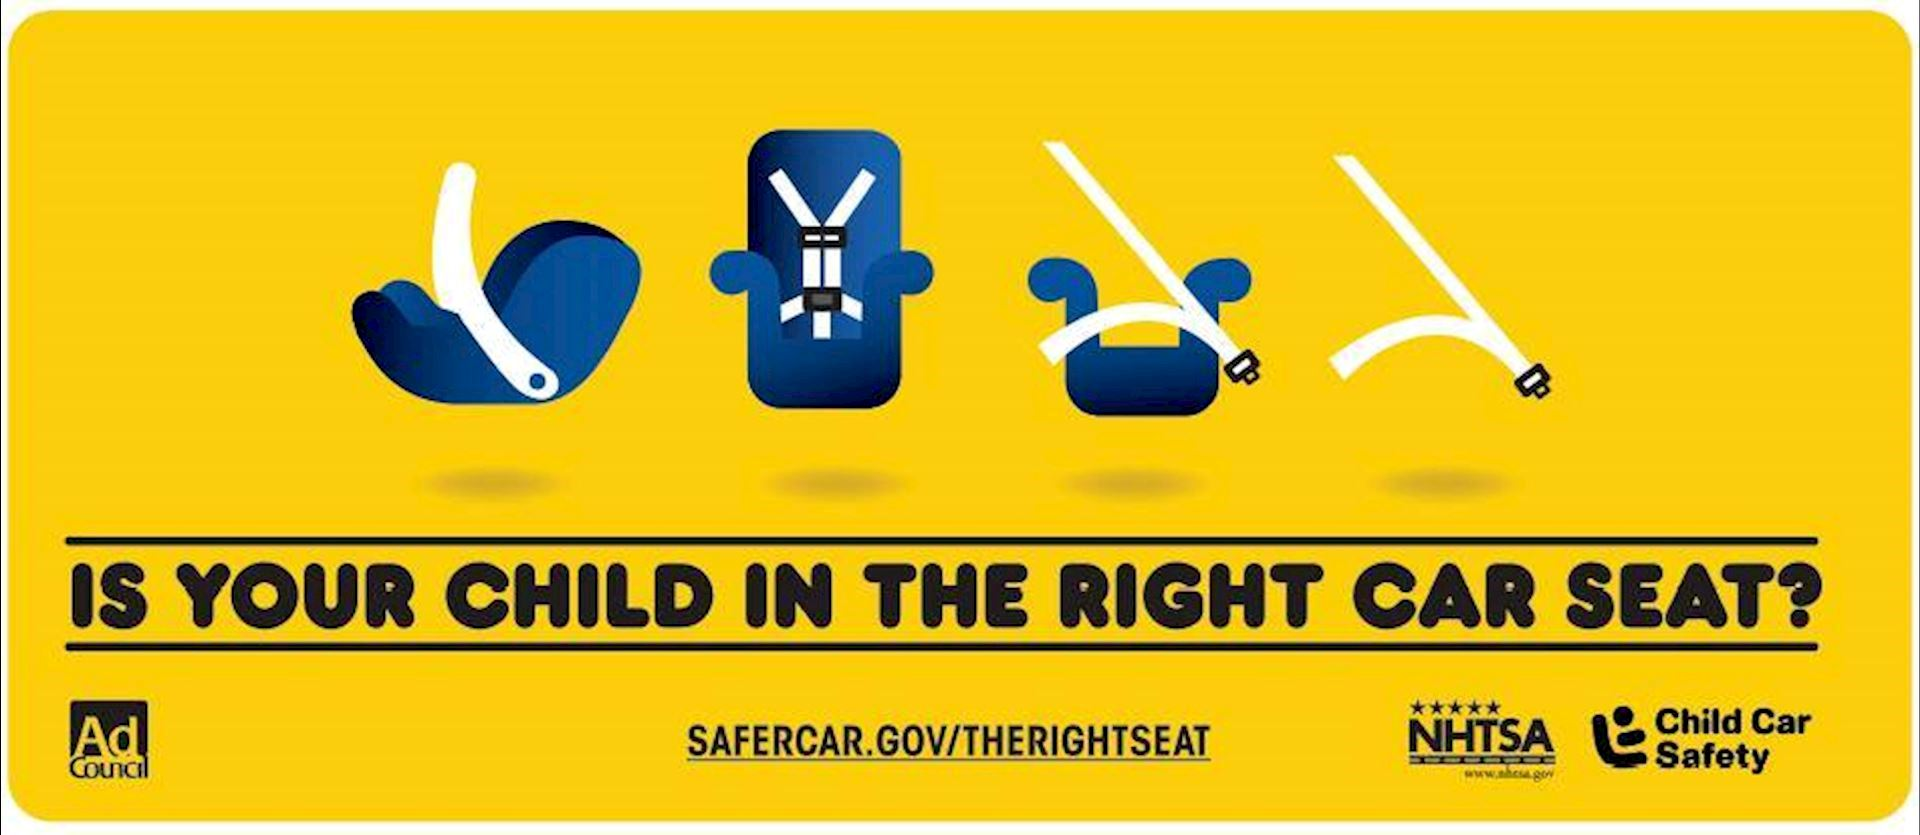 6 Child Seat Safety Guidelines All Parents Should Know